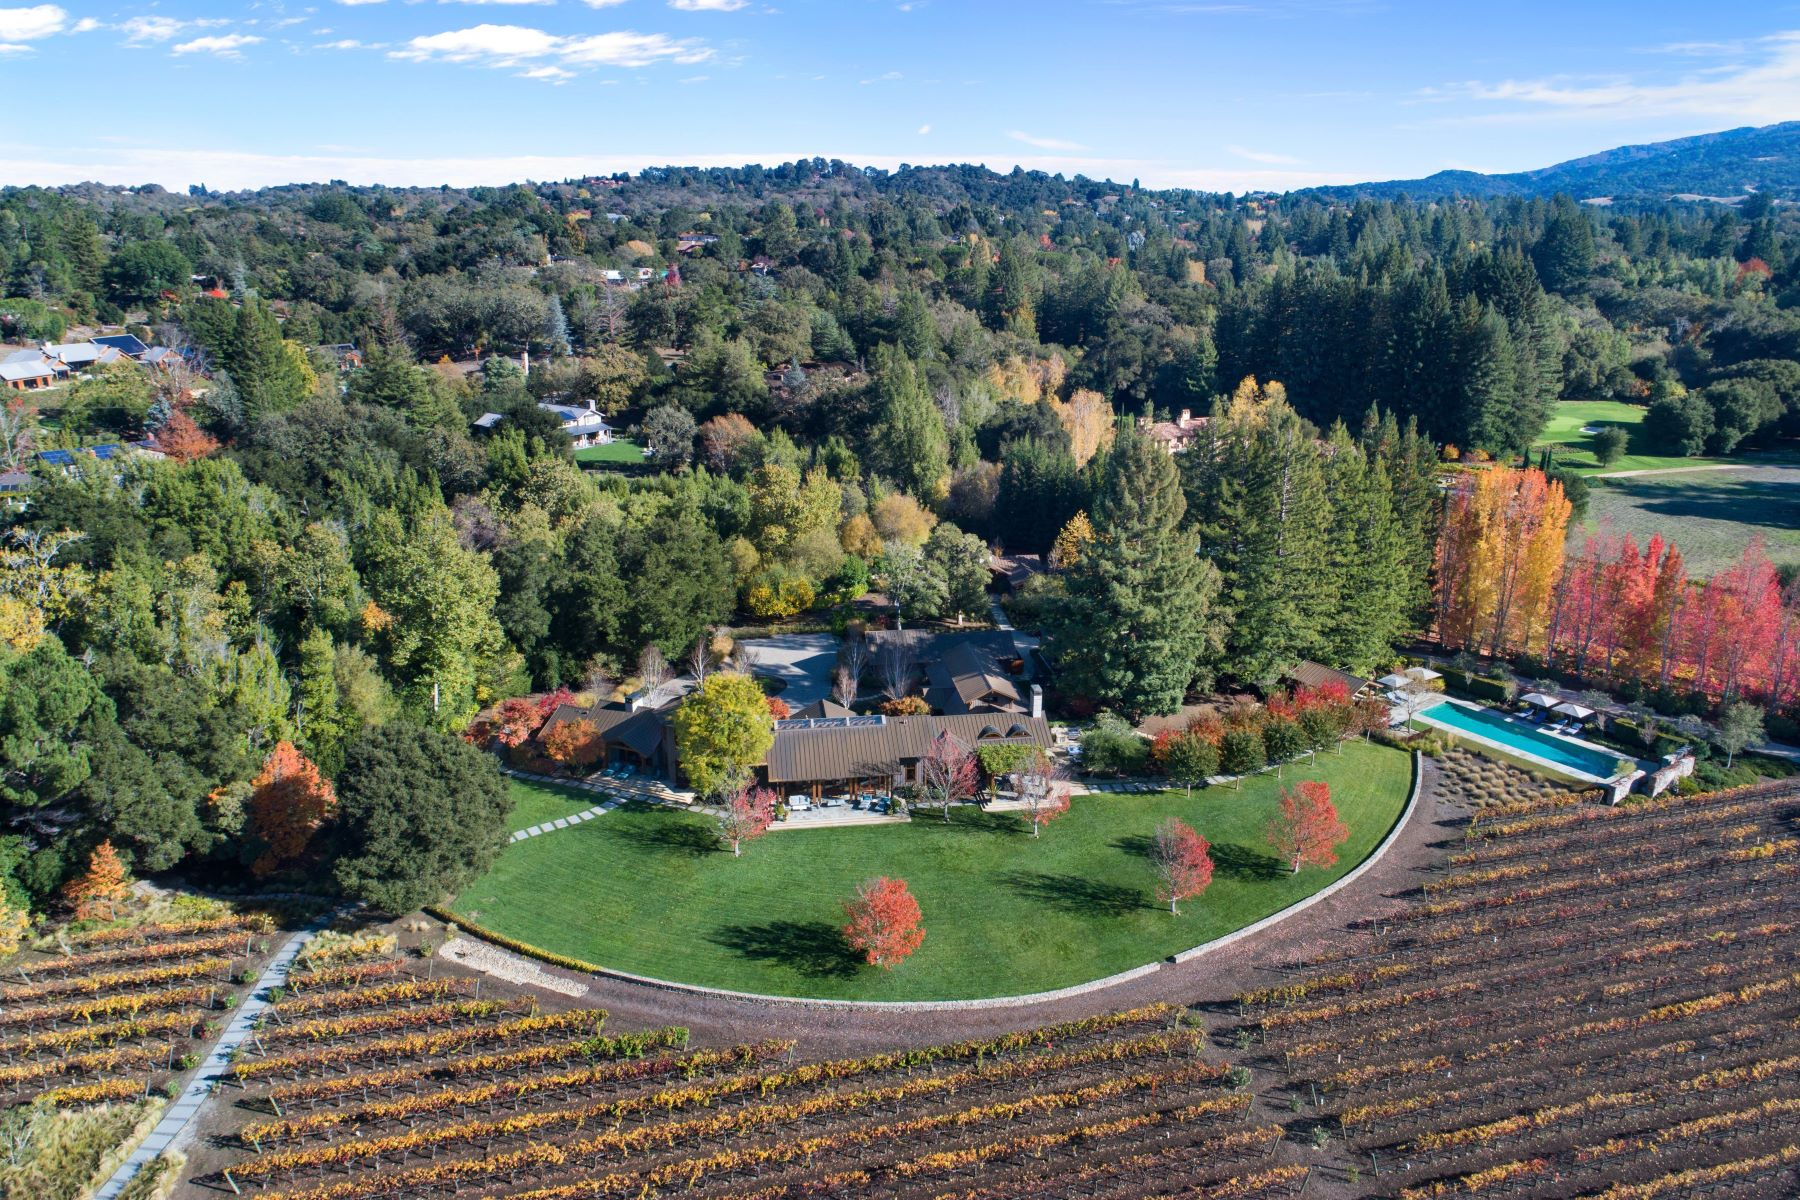 Single Family Home for Sale at Woodside Vineyard Estate Woodside, California 94062 United States